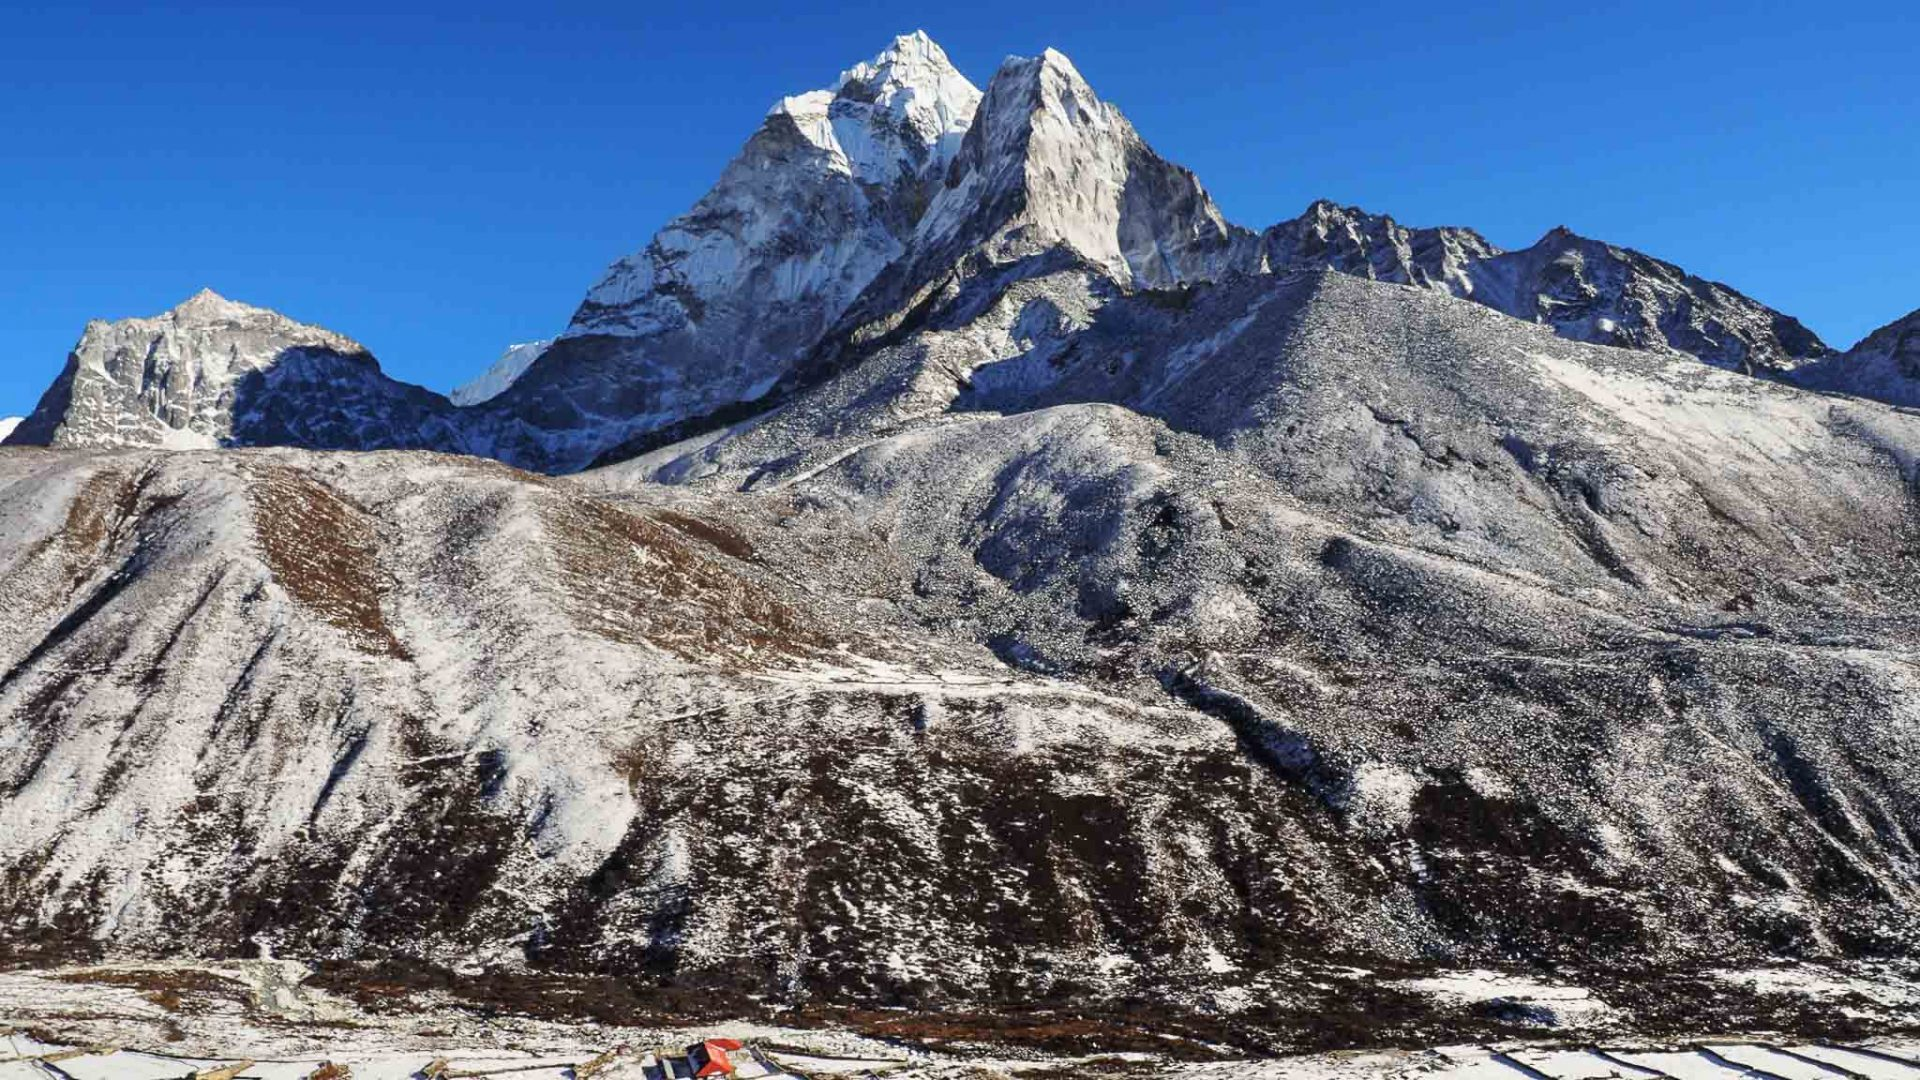 Ama Dablam is a familiar sight on the EBC trail.